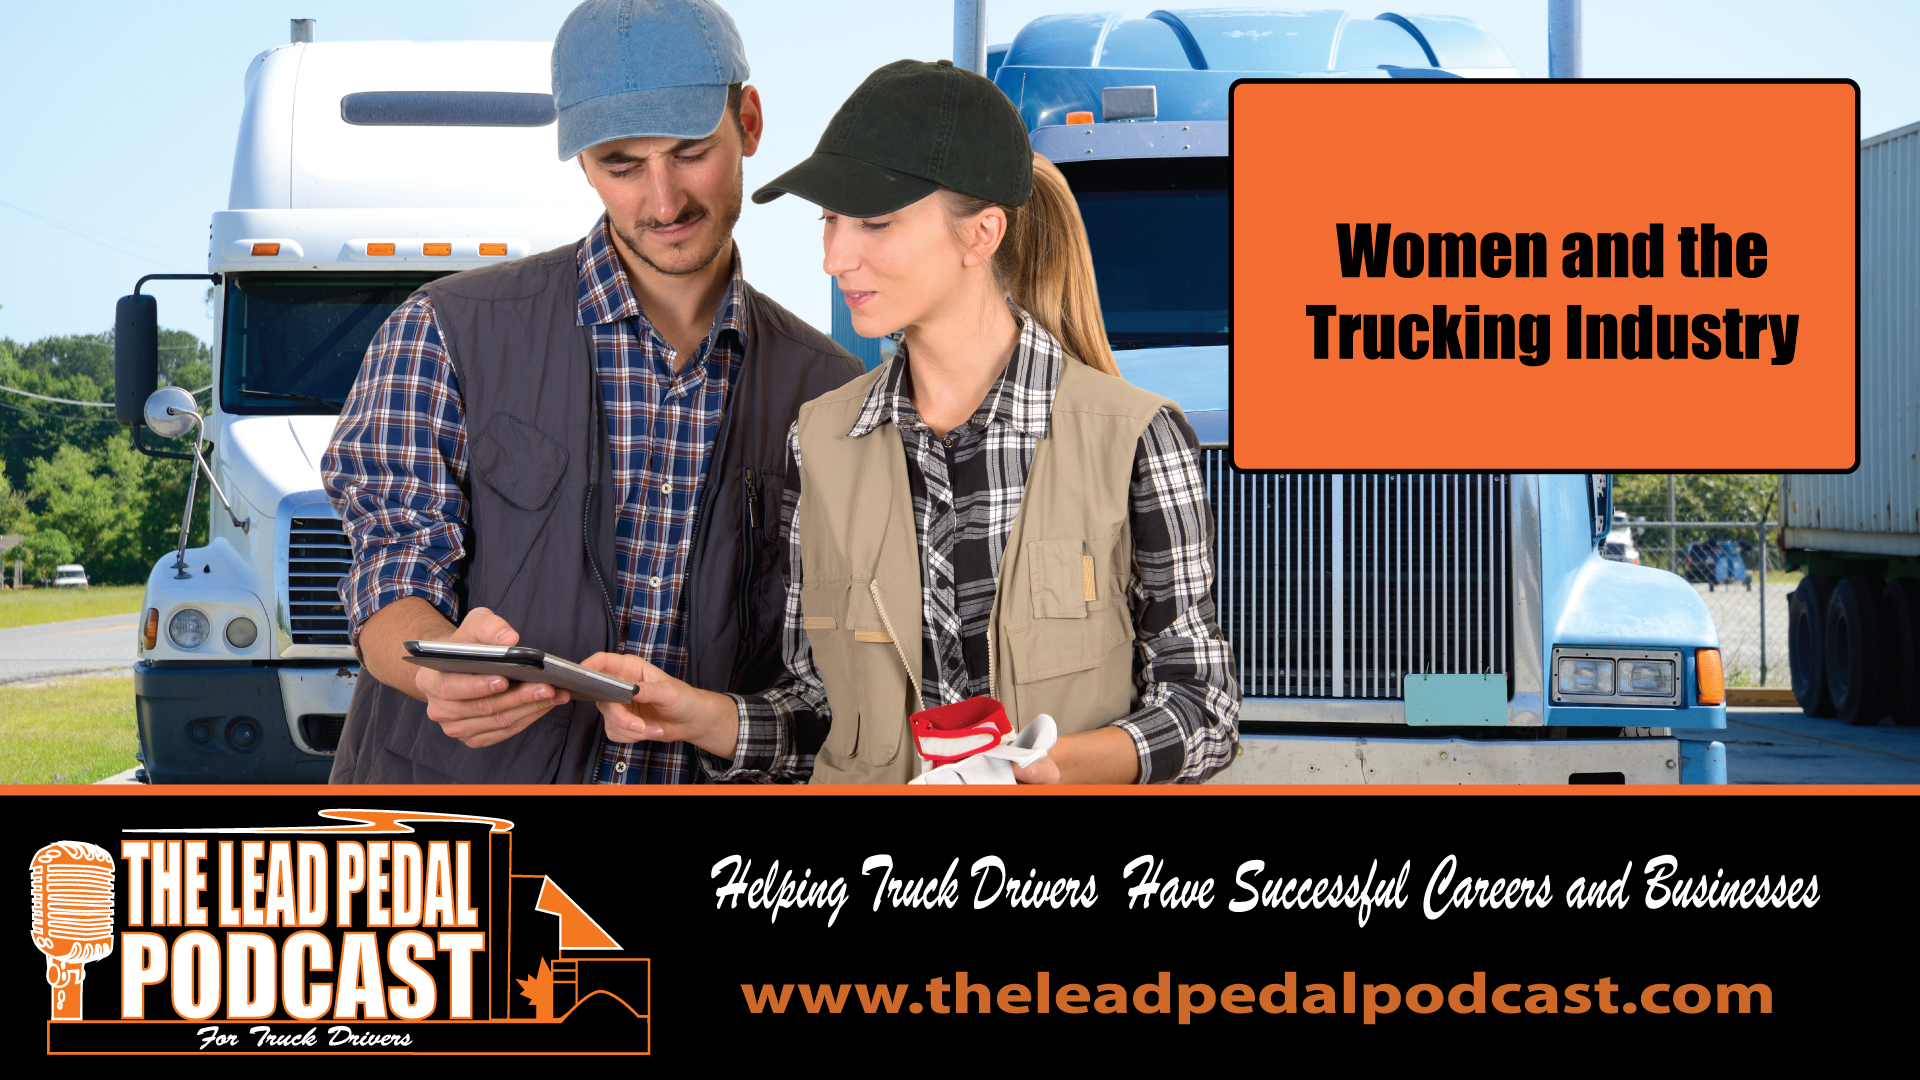 LP556 Successful Women in the Trucking Industry